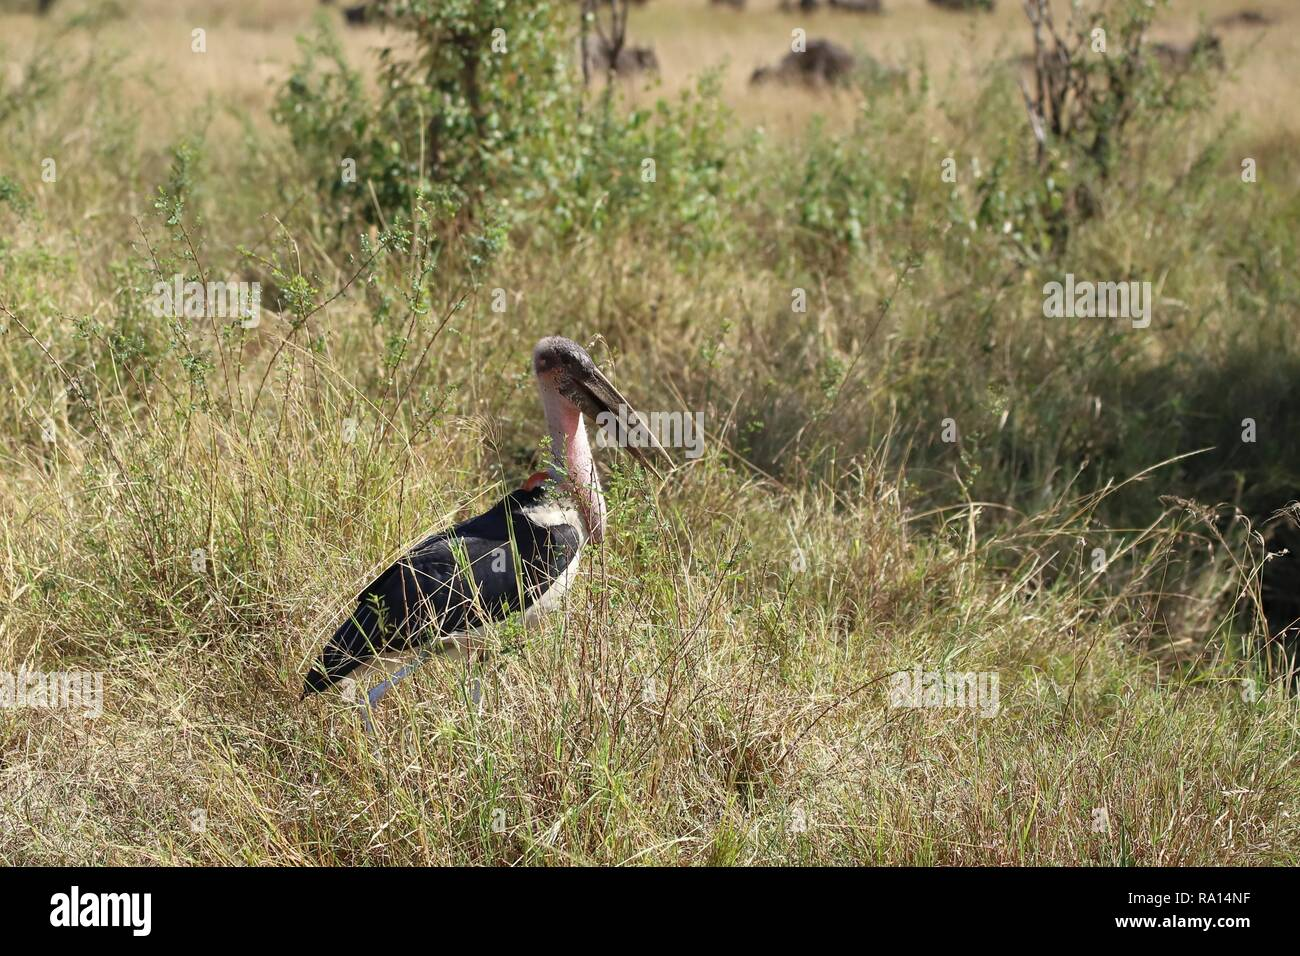 Marabou stork which is standing in the grass of the Masai Mara - Stock Image